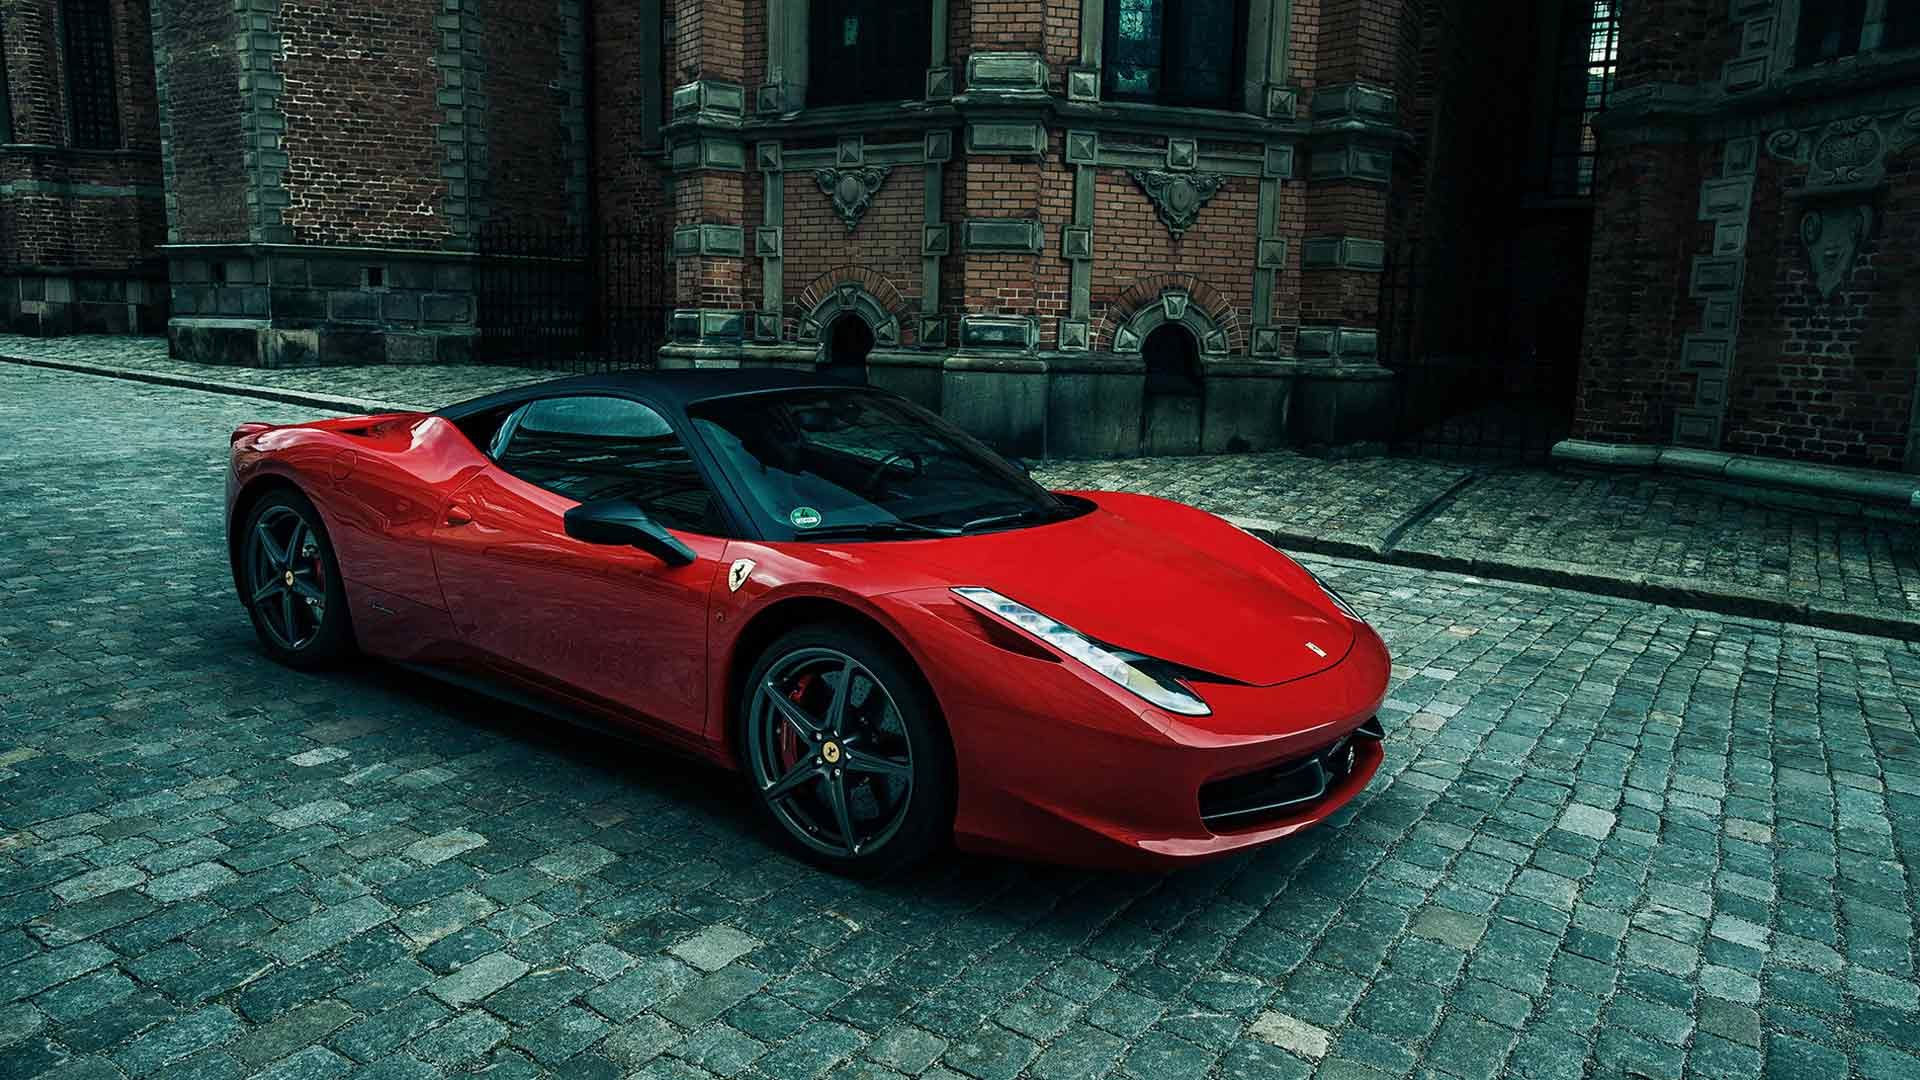 New Red Luxury Car For Rent In Dubai Sports Car And Luxury - Sports cars rental dubai